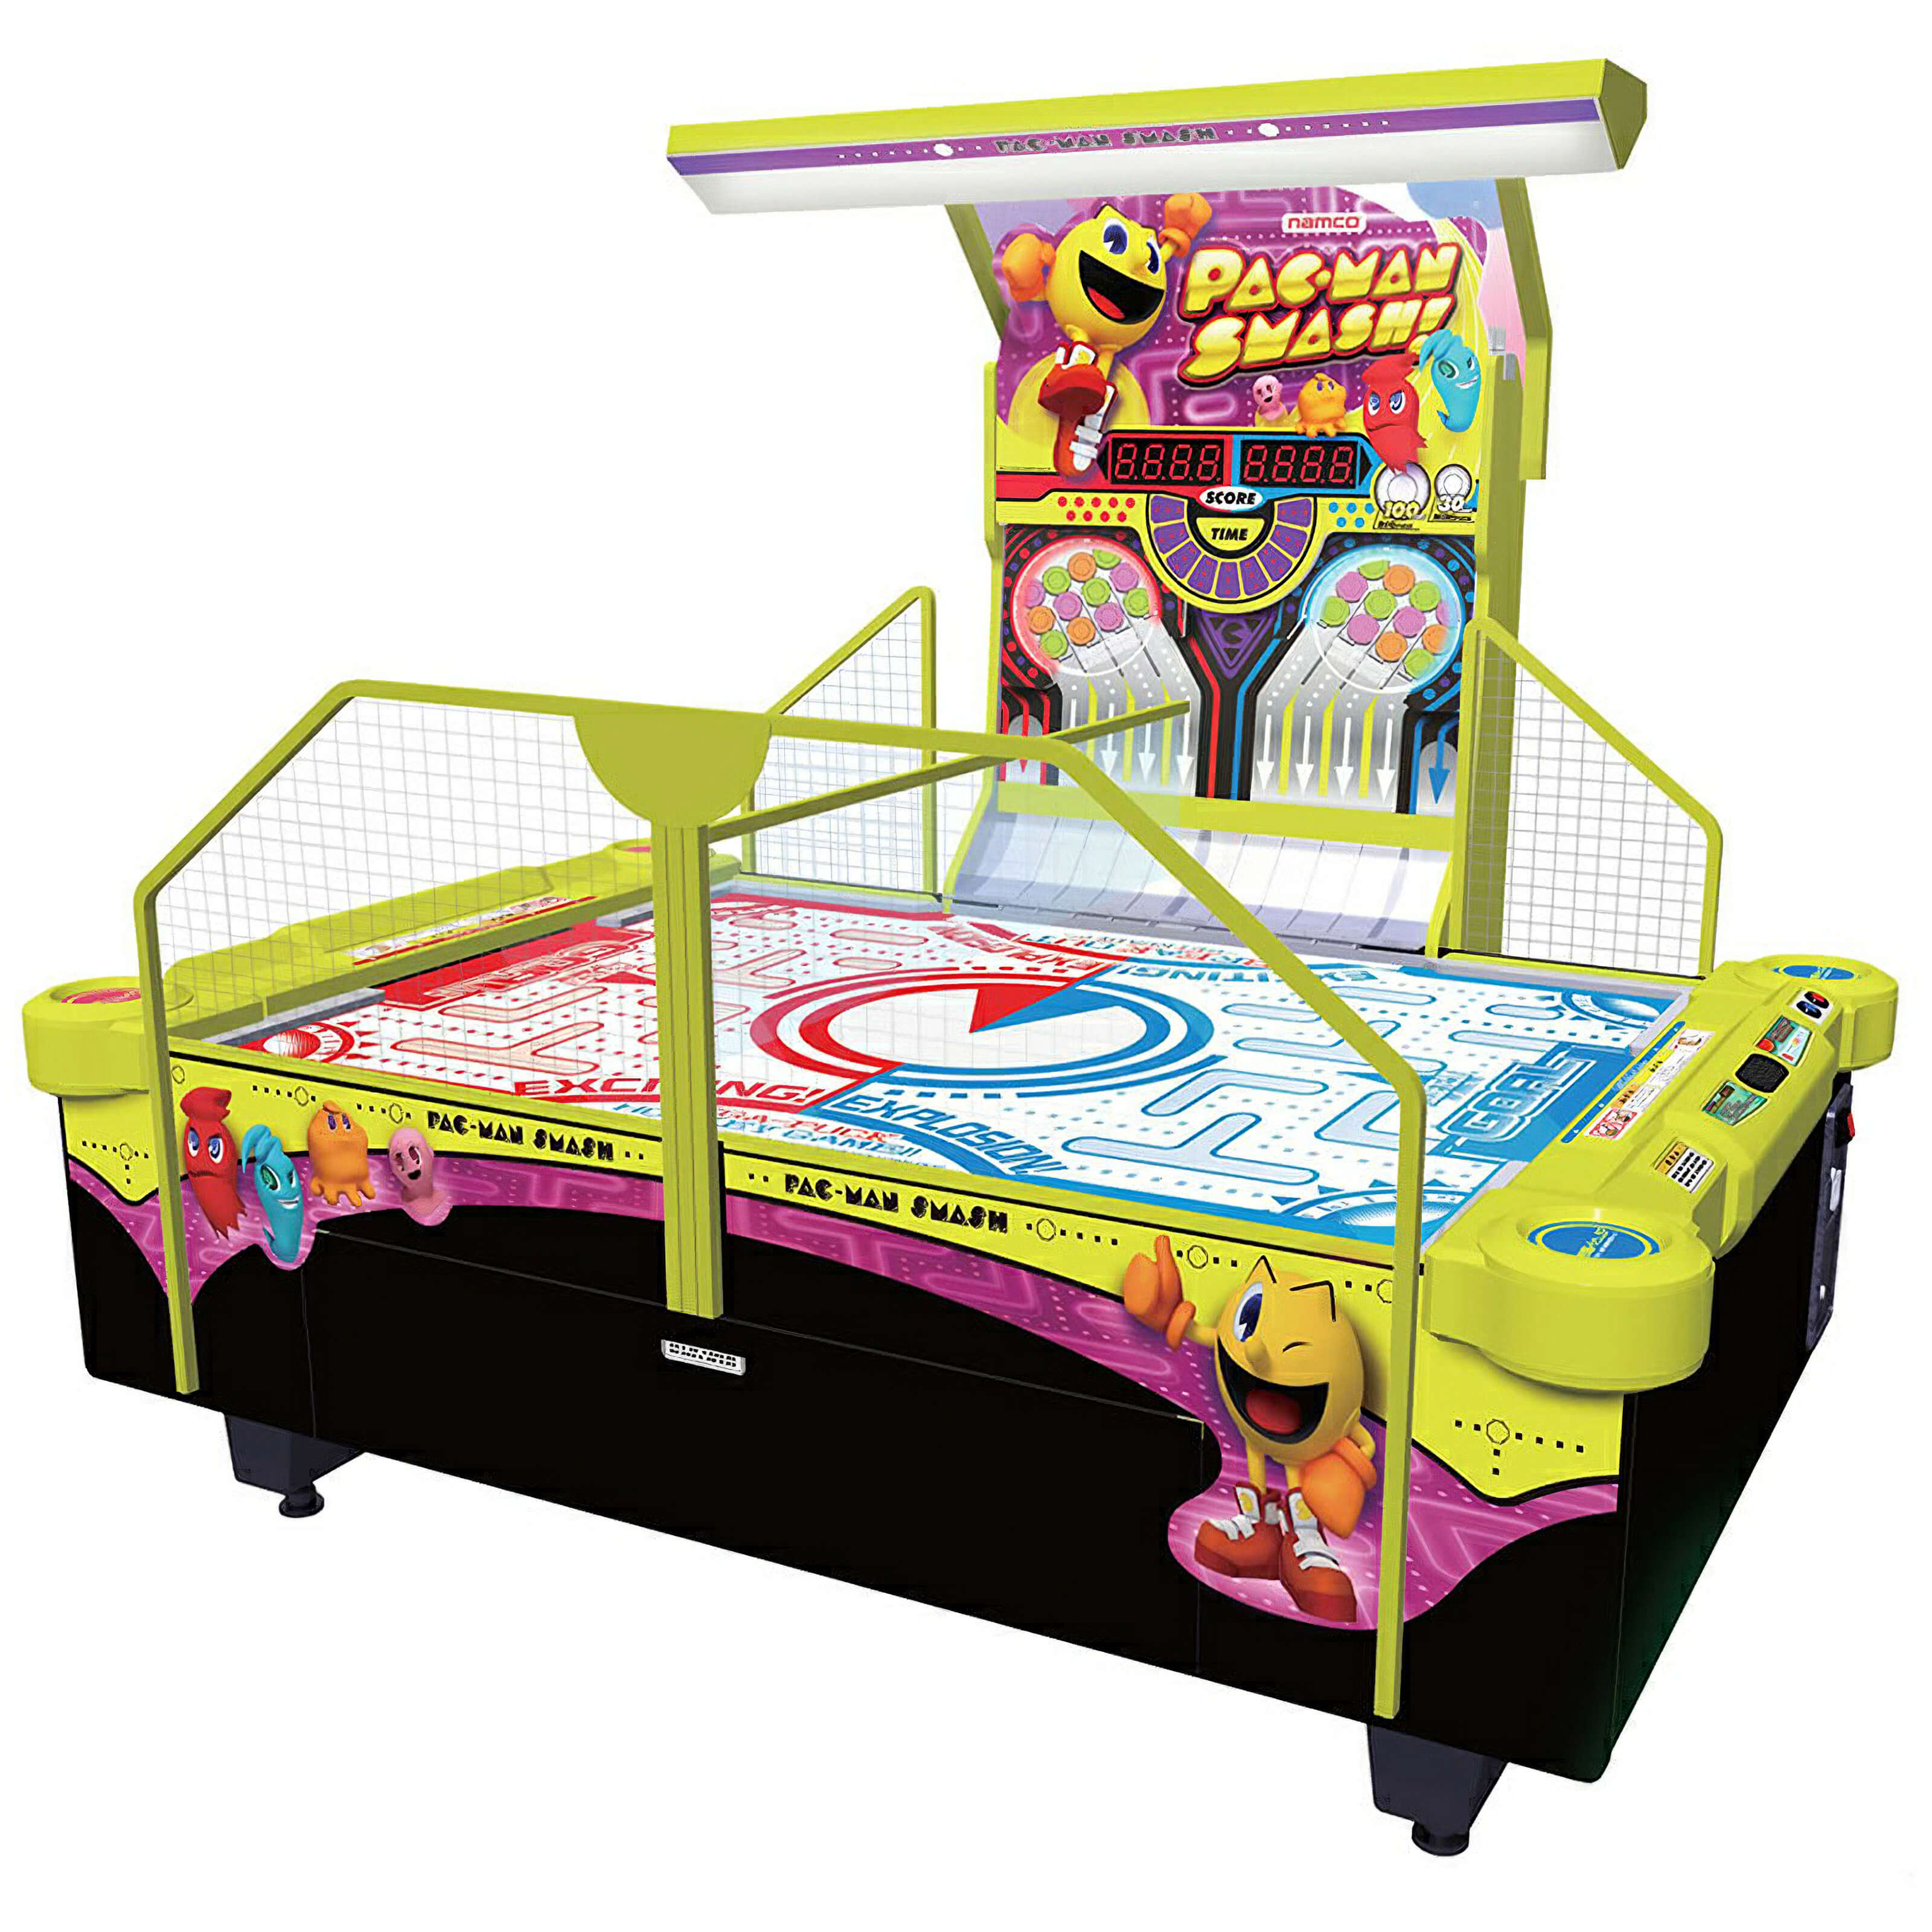 Namco Pac-man Smash Arcade Air Hockey Table